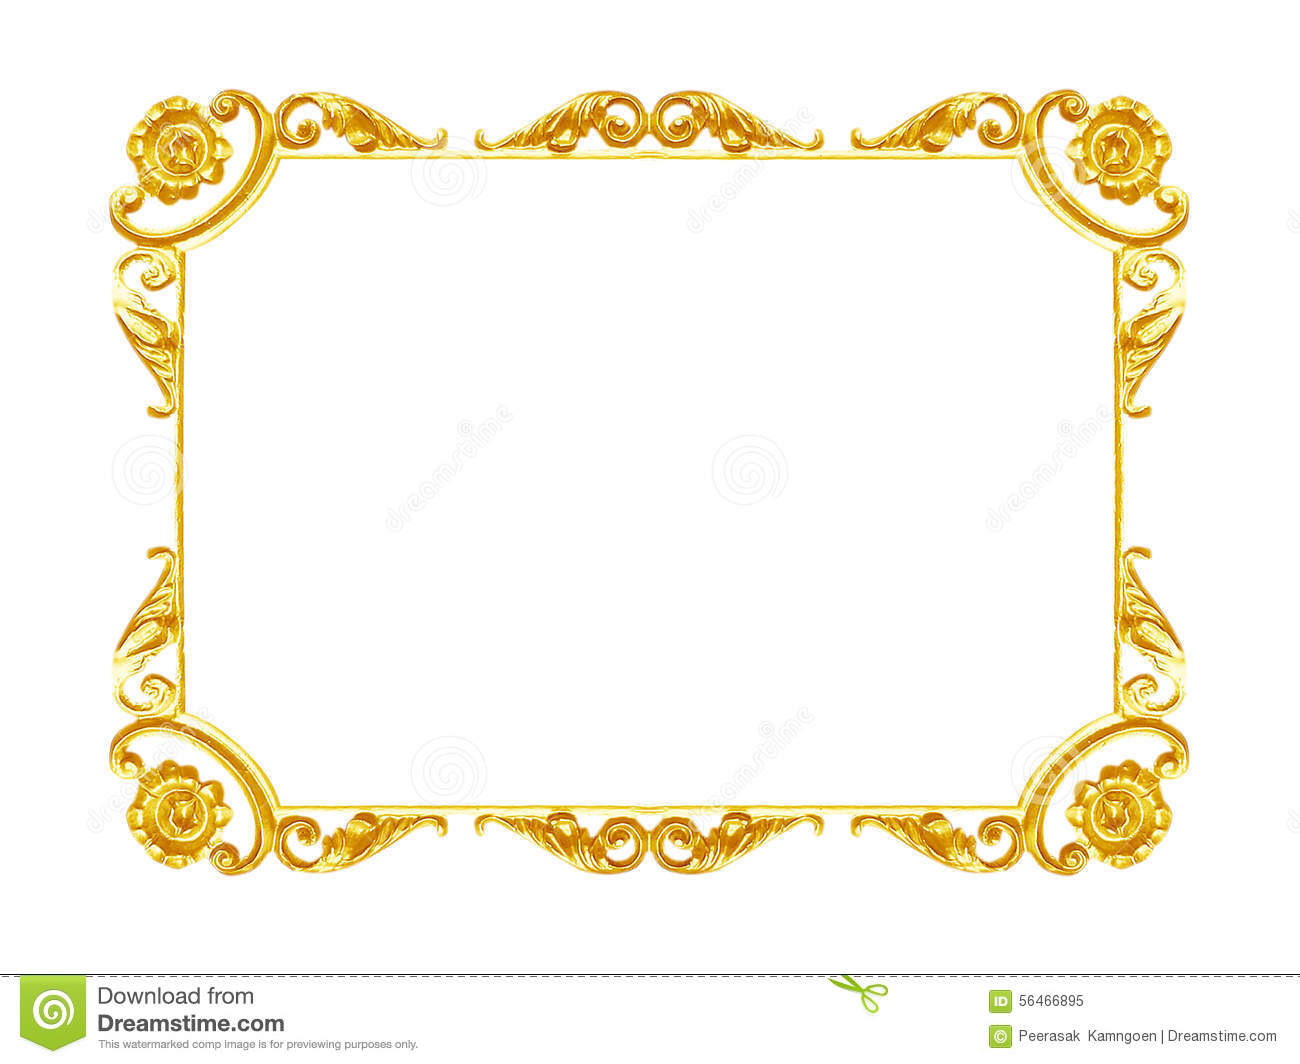 Ornament Elements, Vintage Gold Frame Floral Designs Stock Image ...